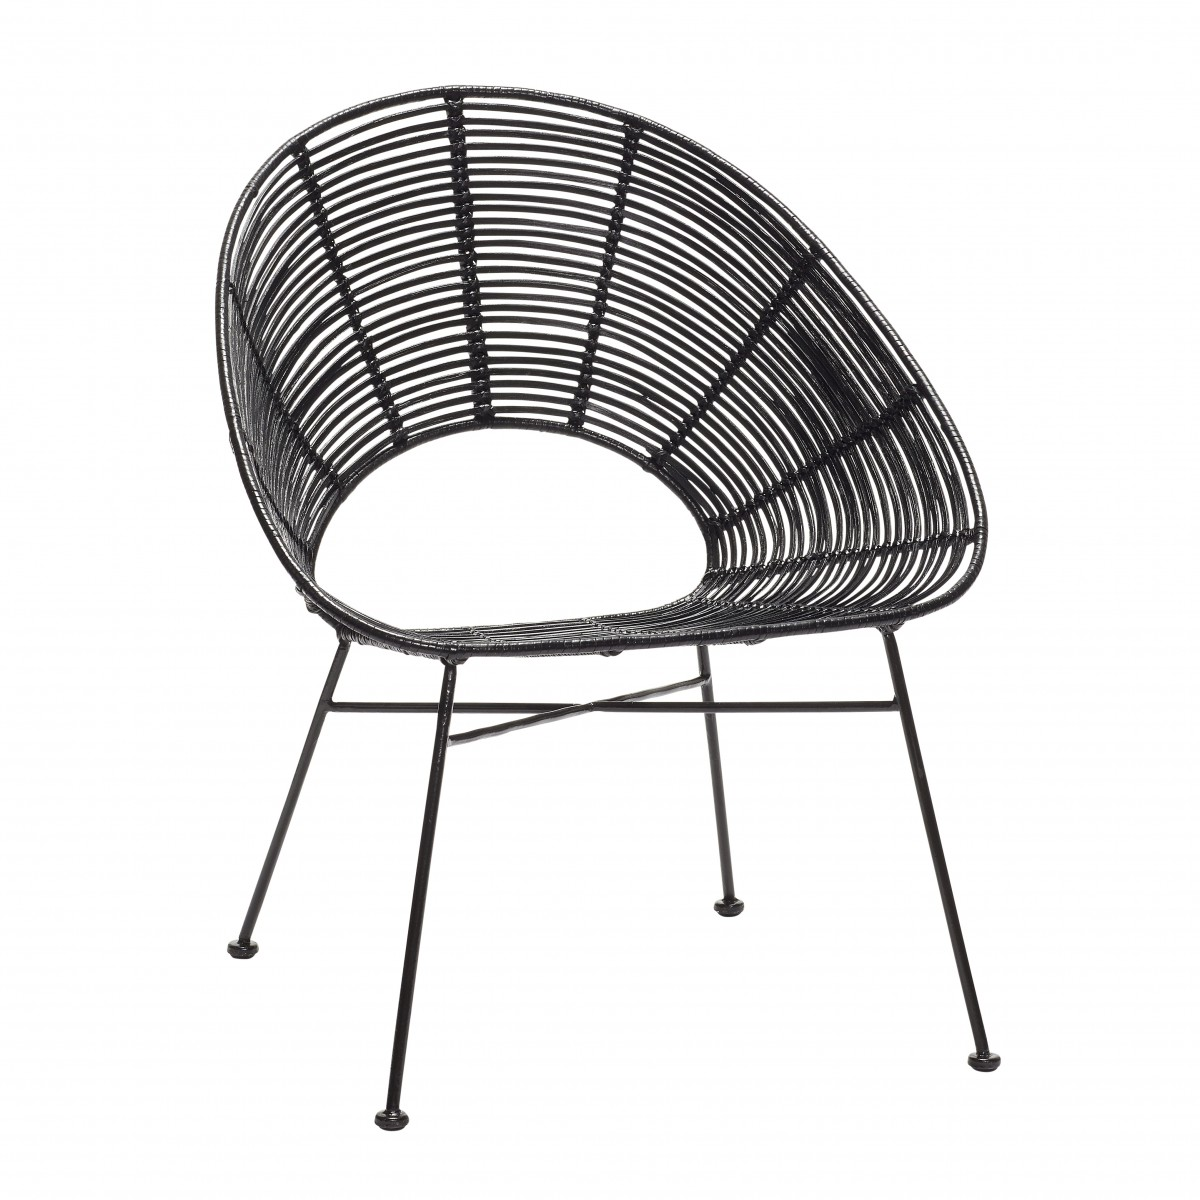 Round Armchair In Black Rattan. Loading Zoom